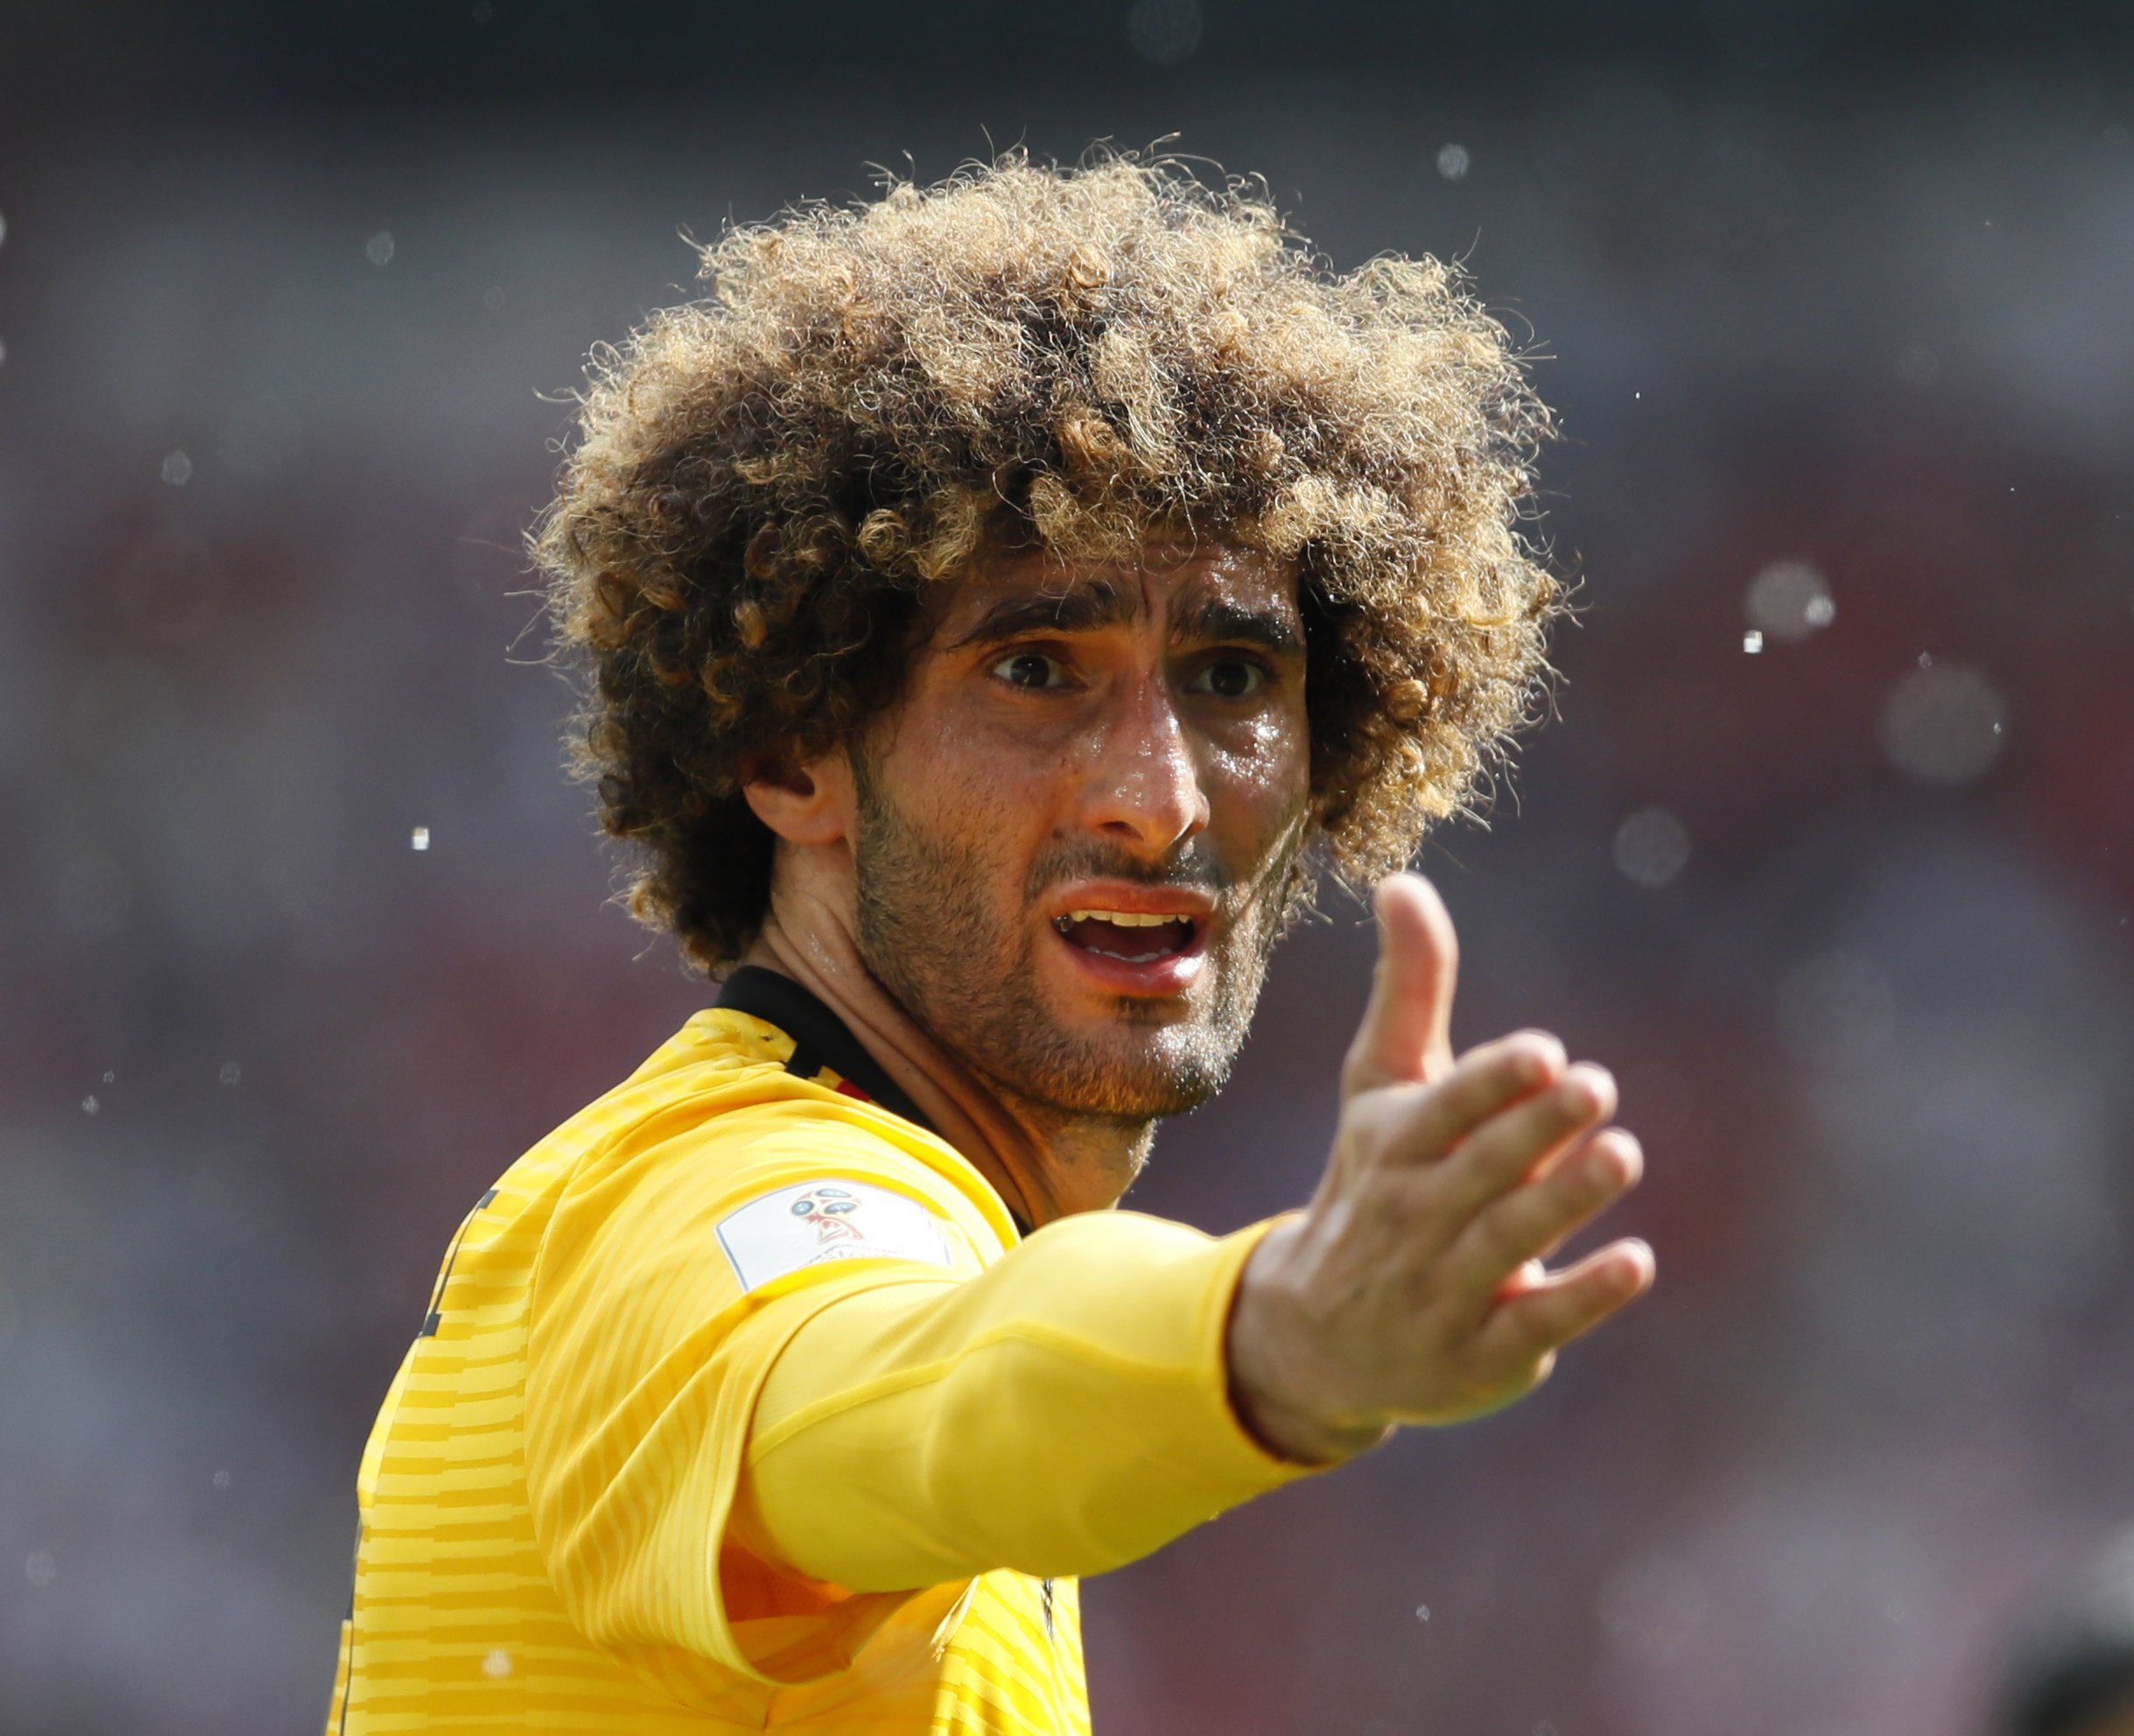 Sportimage via PA Images Marouane Fellaini of Belgium during the FIFA World Cup 2018 Group G match at the Spartak Stadium, Moscow. Picture date 23rd June 2018. Picture credit should read: David Klein/Sportimage via PA Images